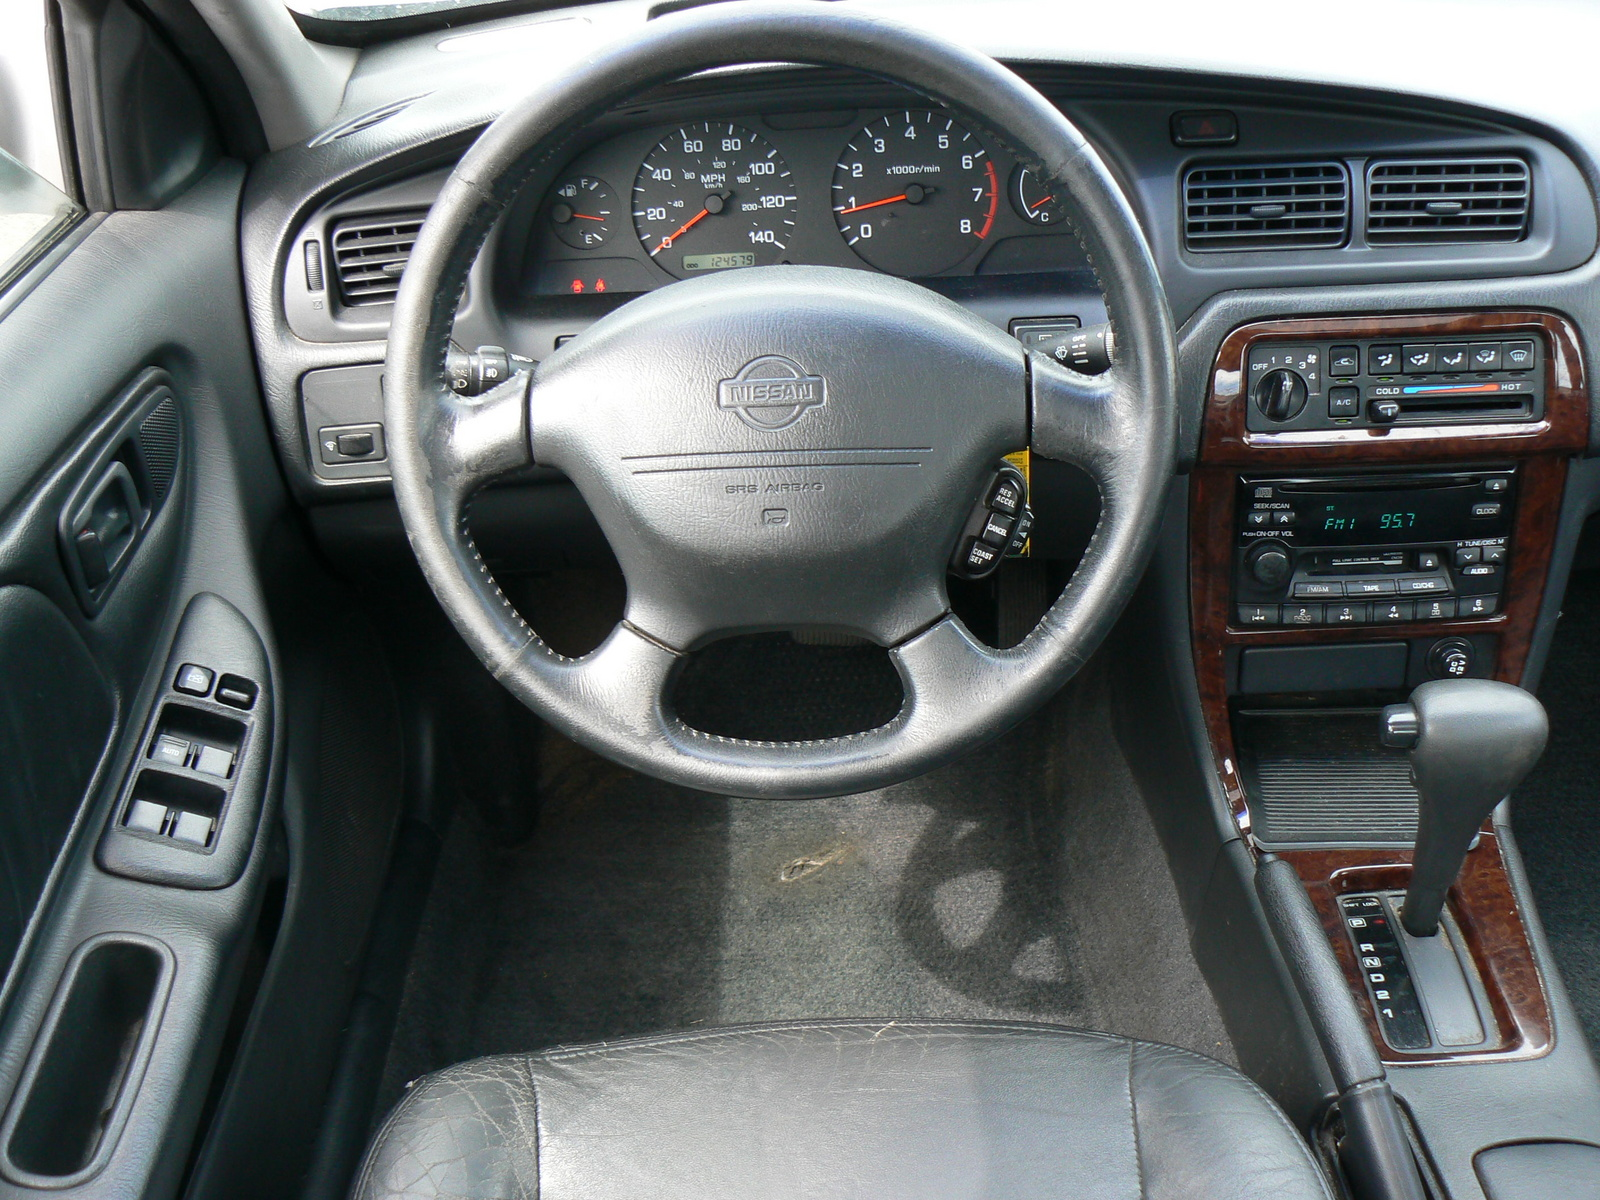 2001 nissan altima information and photos momentcar nissan altima 2001 8 vanachro Image collections